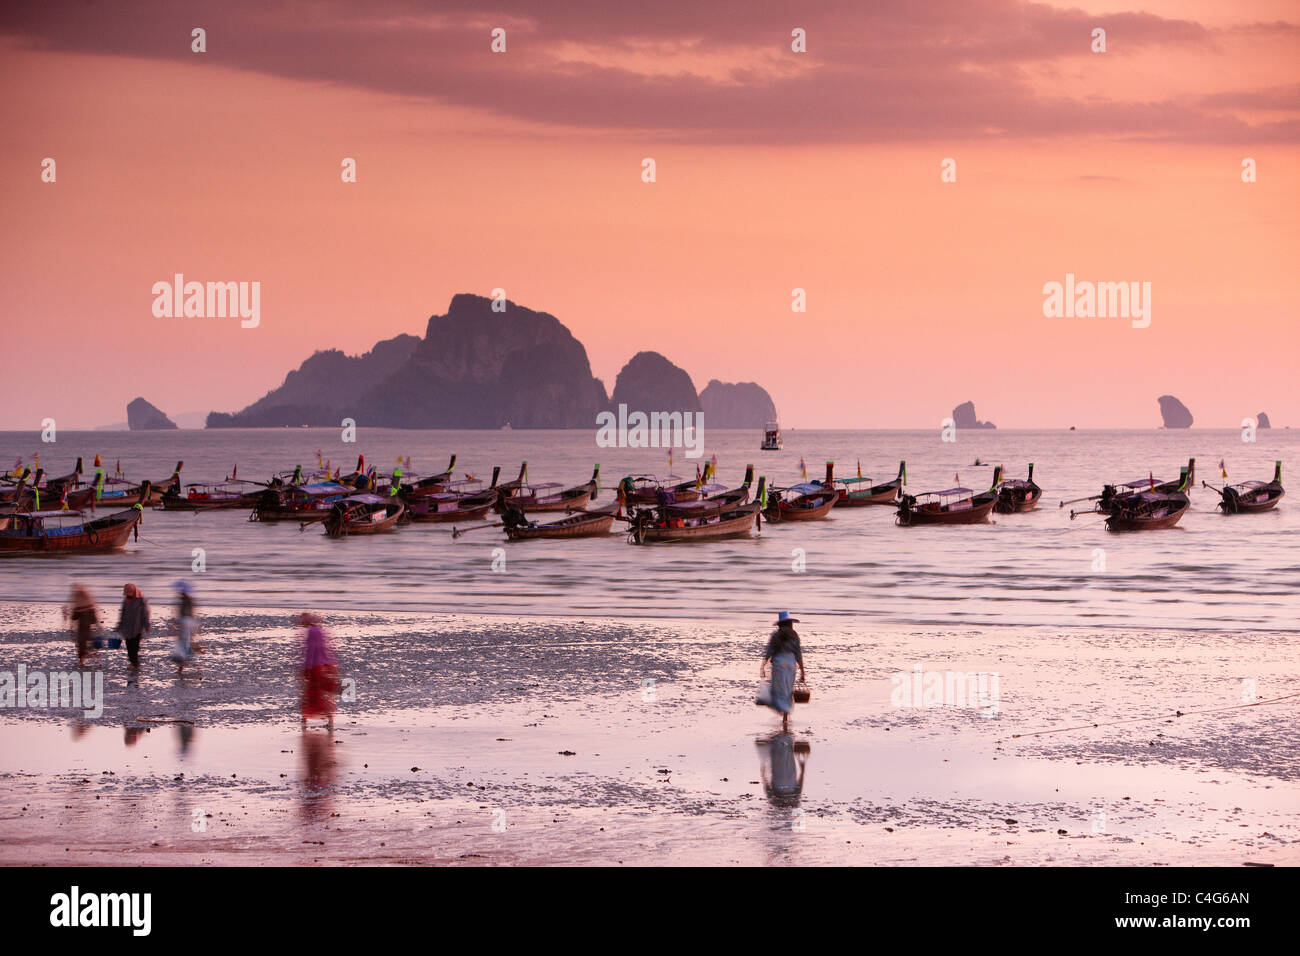 the beach at Ao Nang at dusk, nr Krabi, Thailand - Stock Image